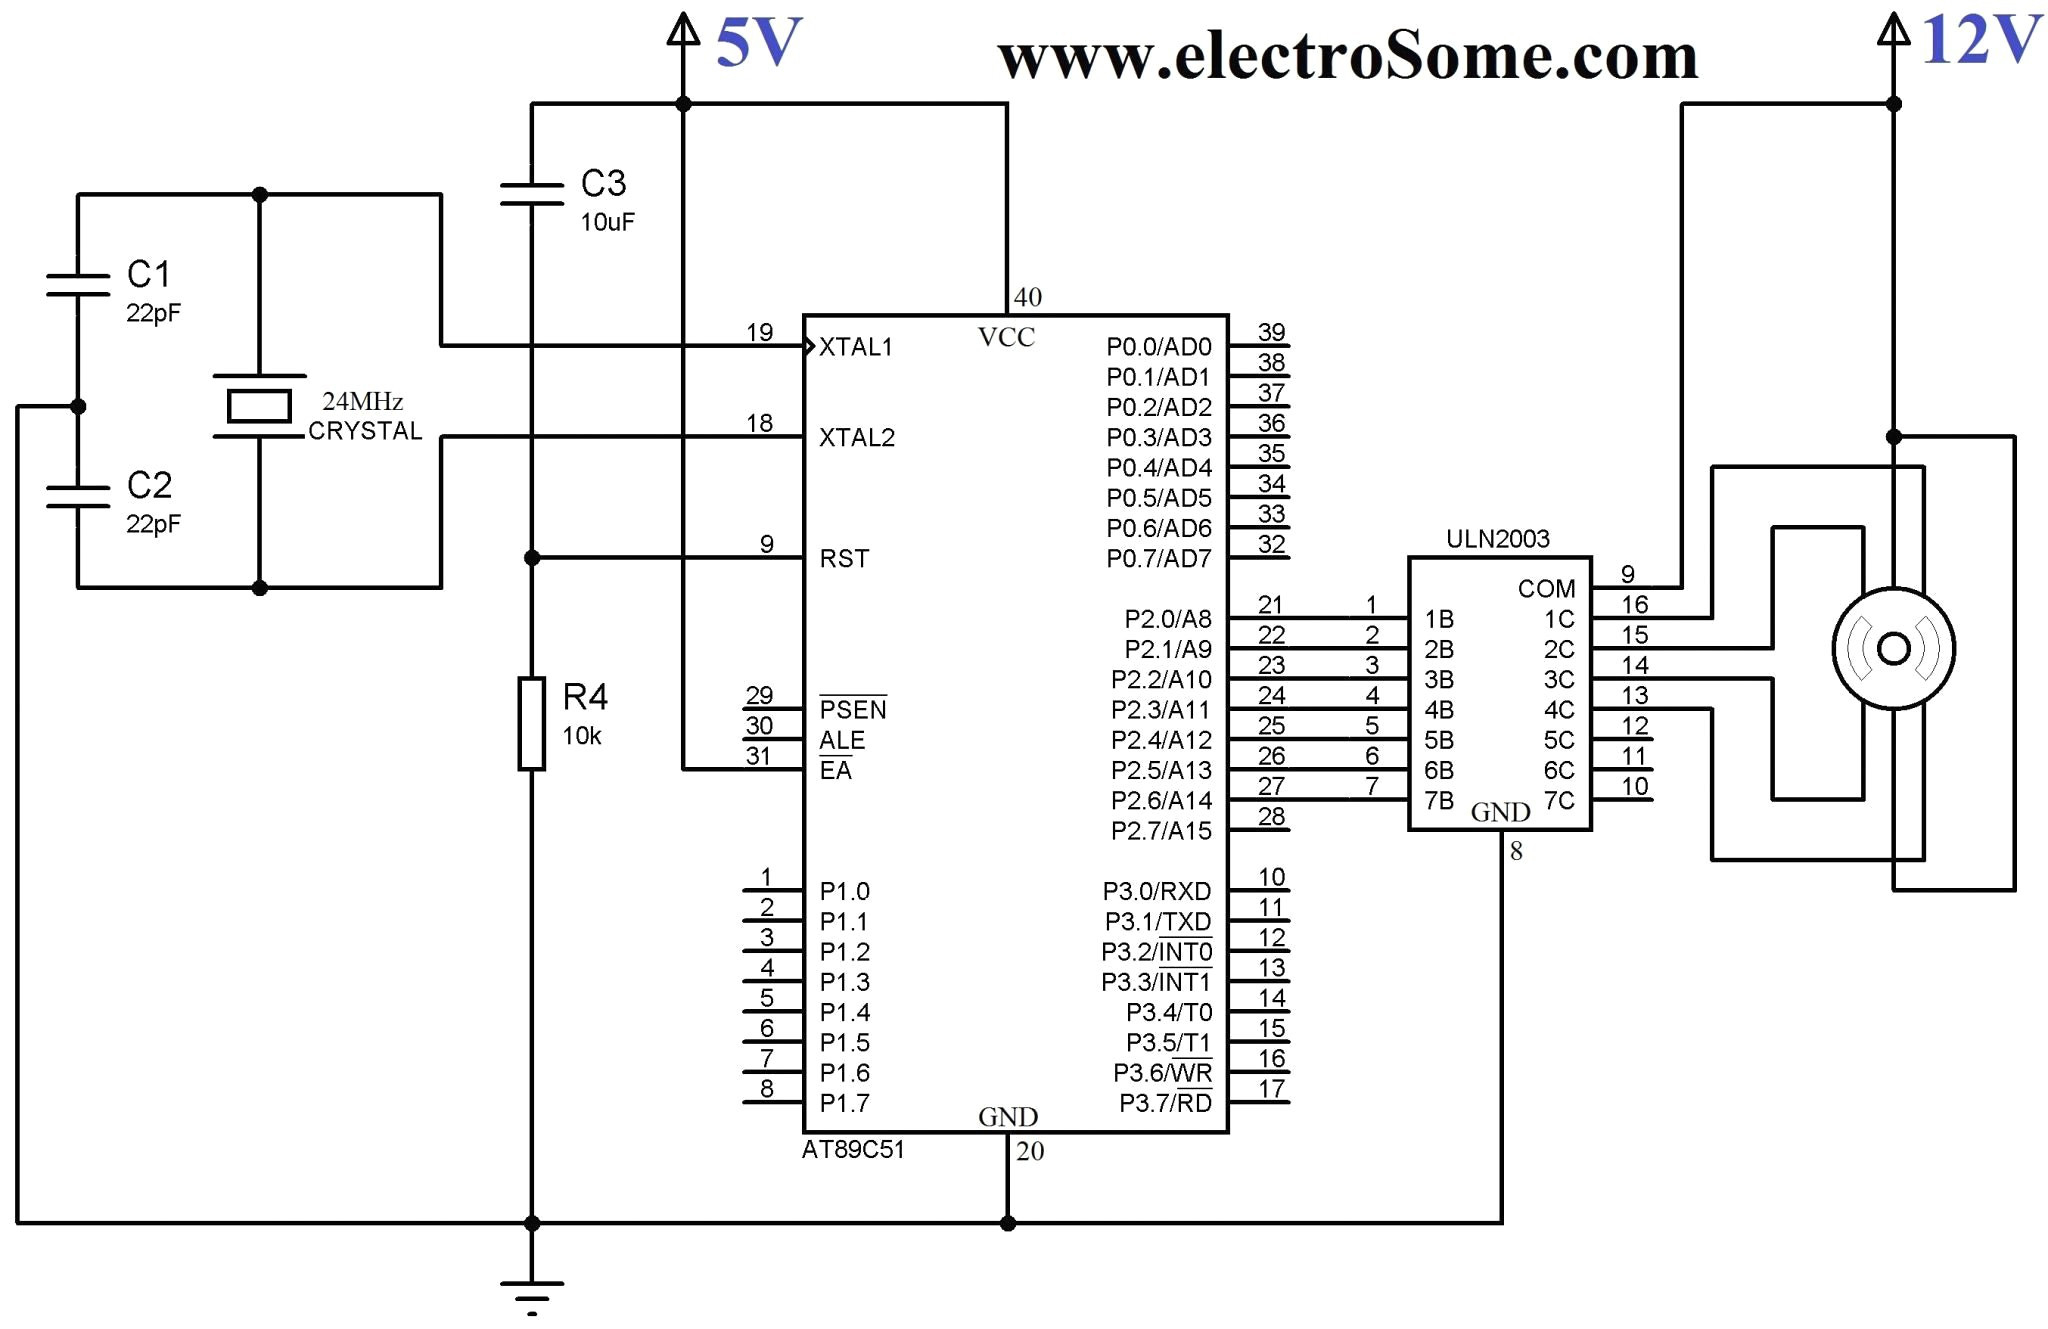 240 volt photocell wiring diagram download 3wire photocell wiring schematic lighting contactor with photocell wiring schematic #9